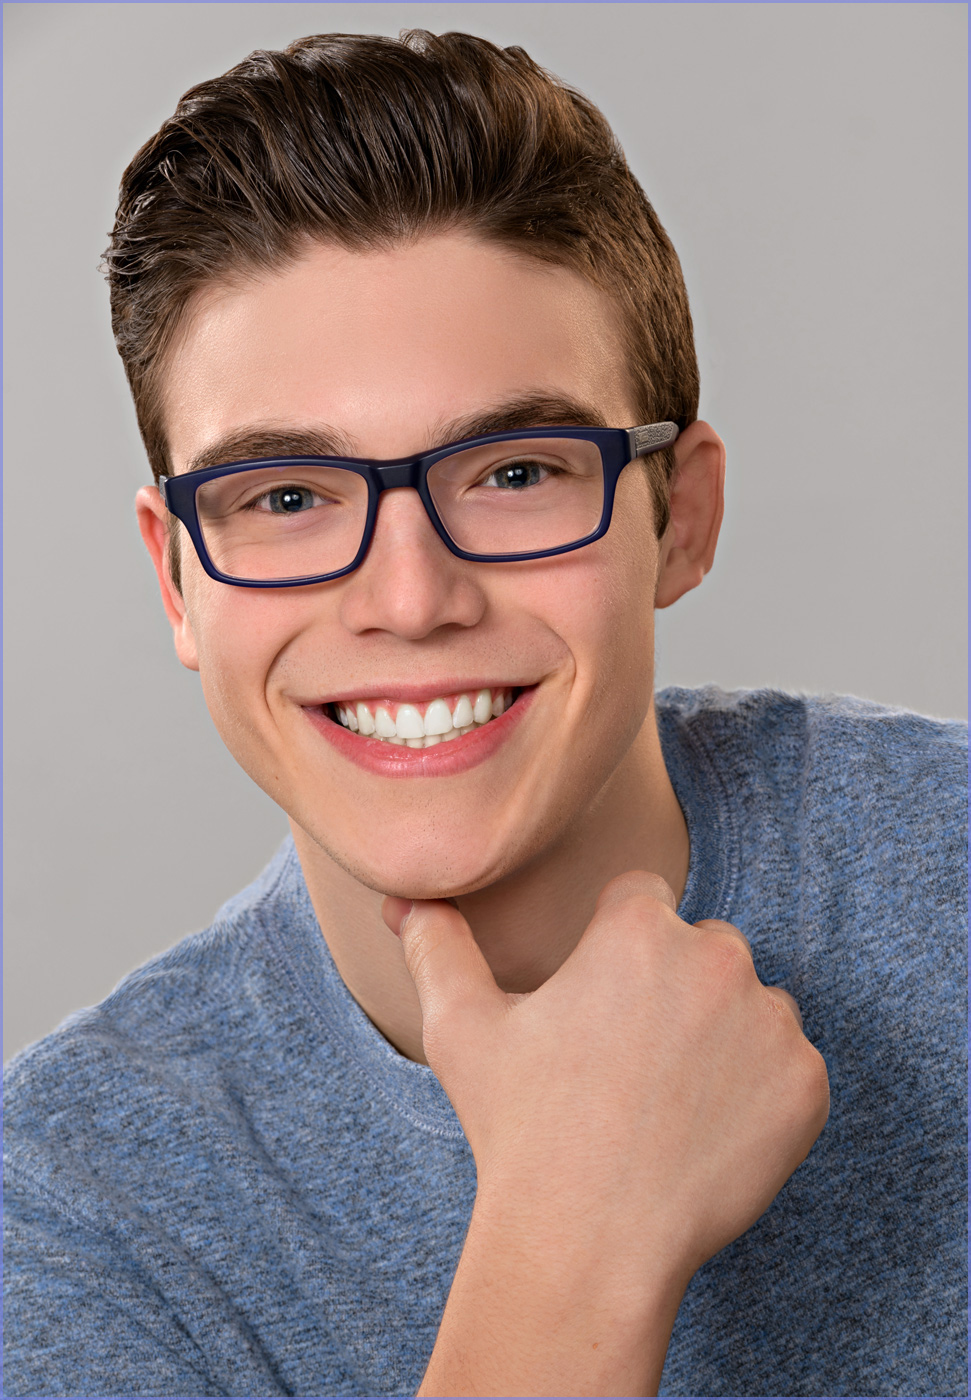 headshot of young actor model